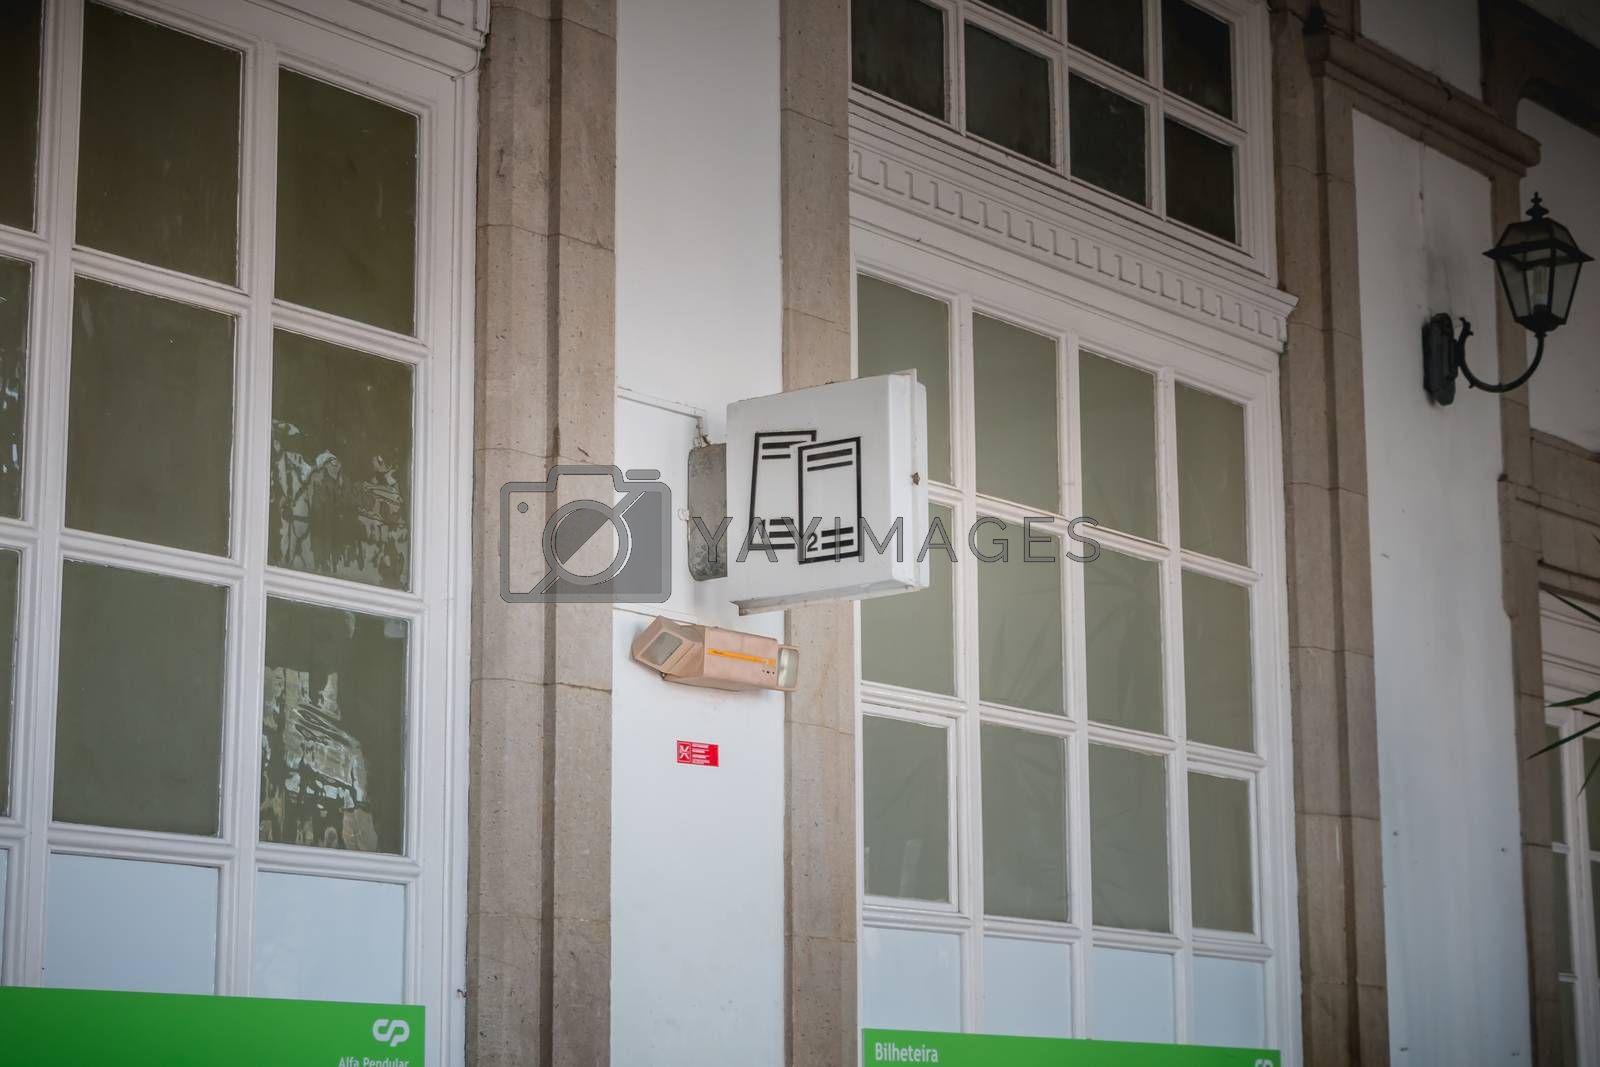 Viana do Castelo, Portugal - May 10, 2018: Architectural detail of the small Viana do Castelo train station on a spring day